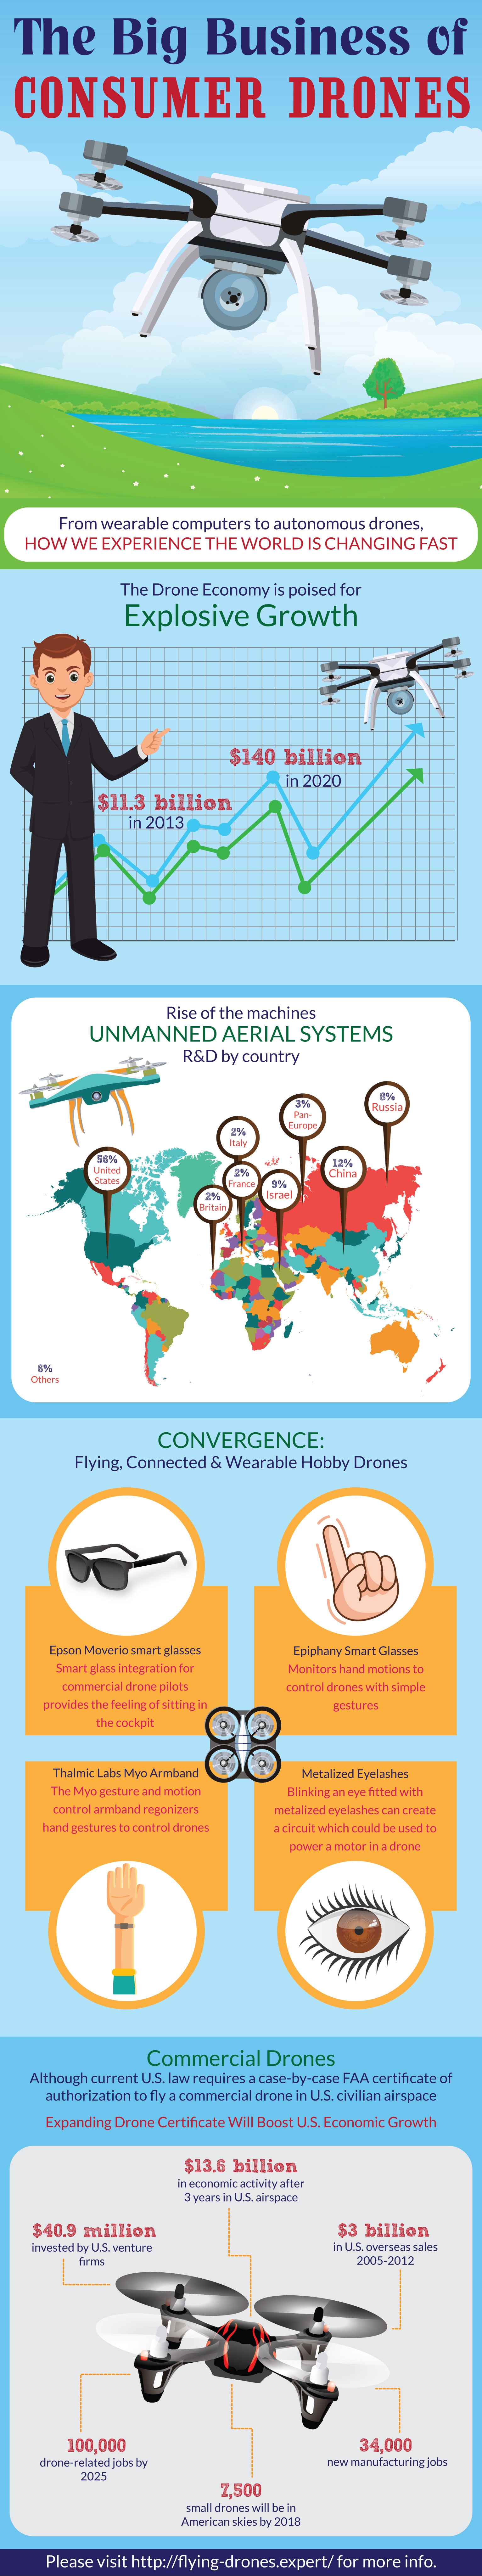 The Business of Drones Infographic